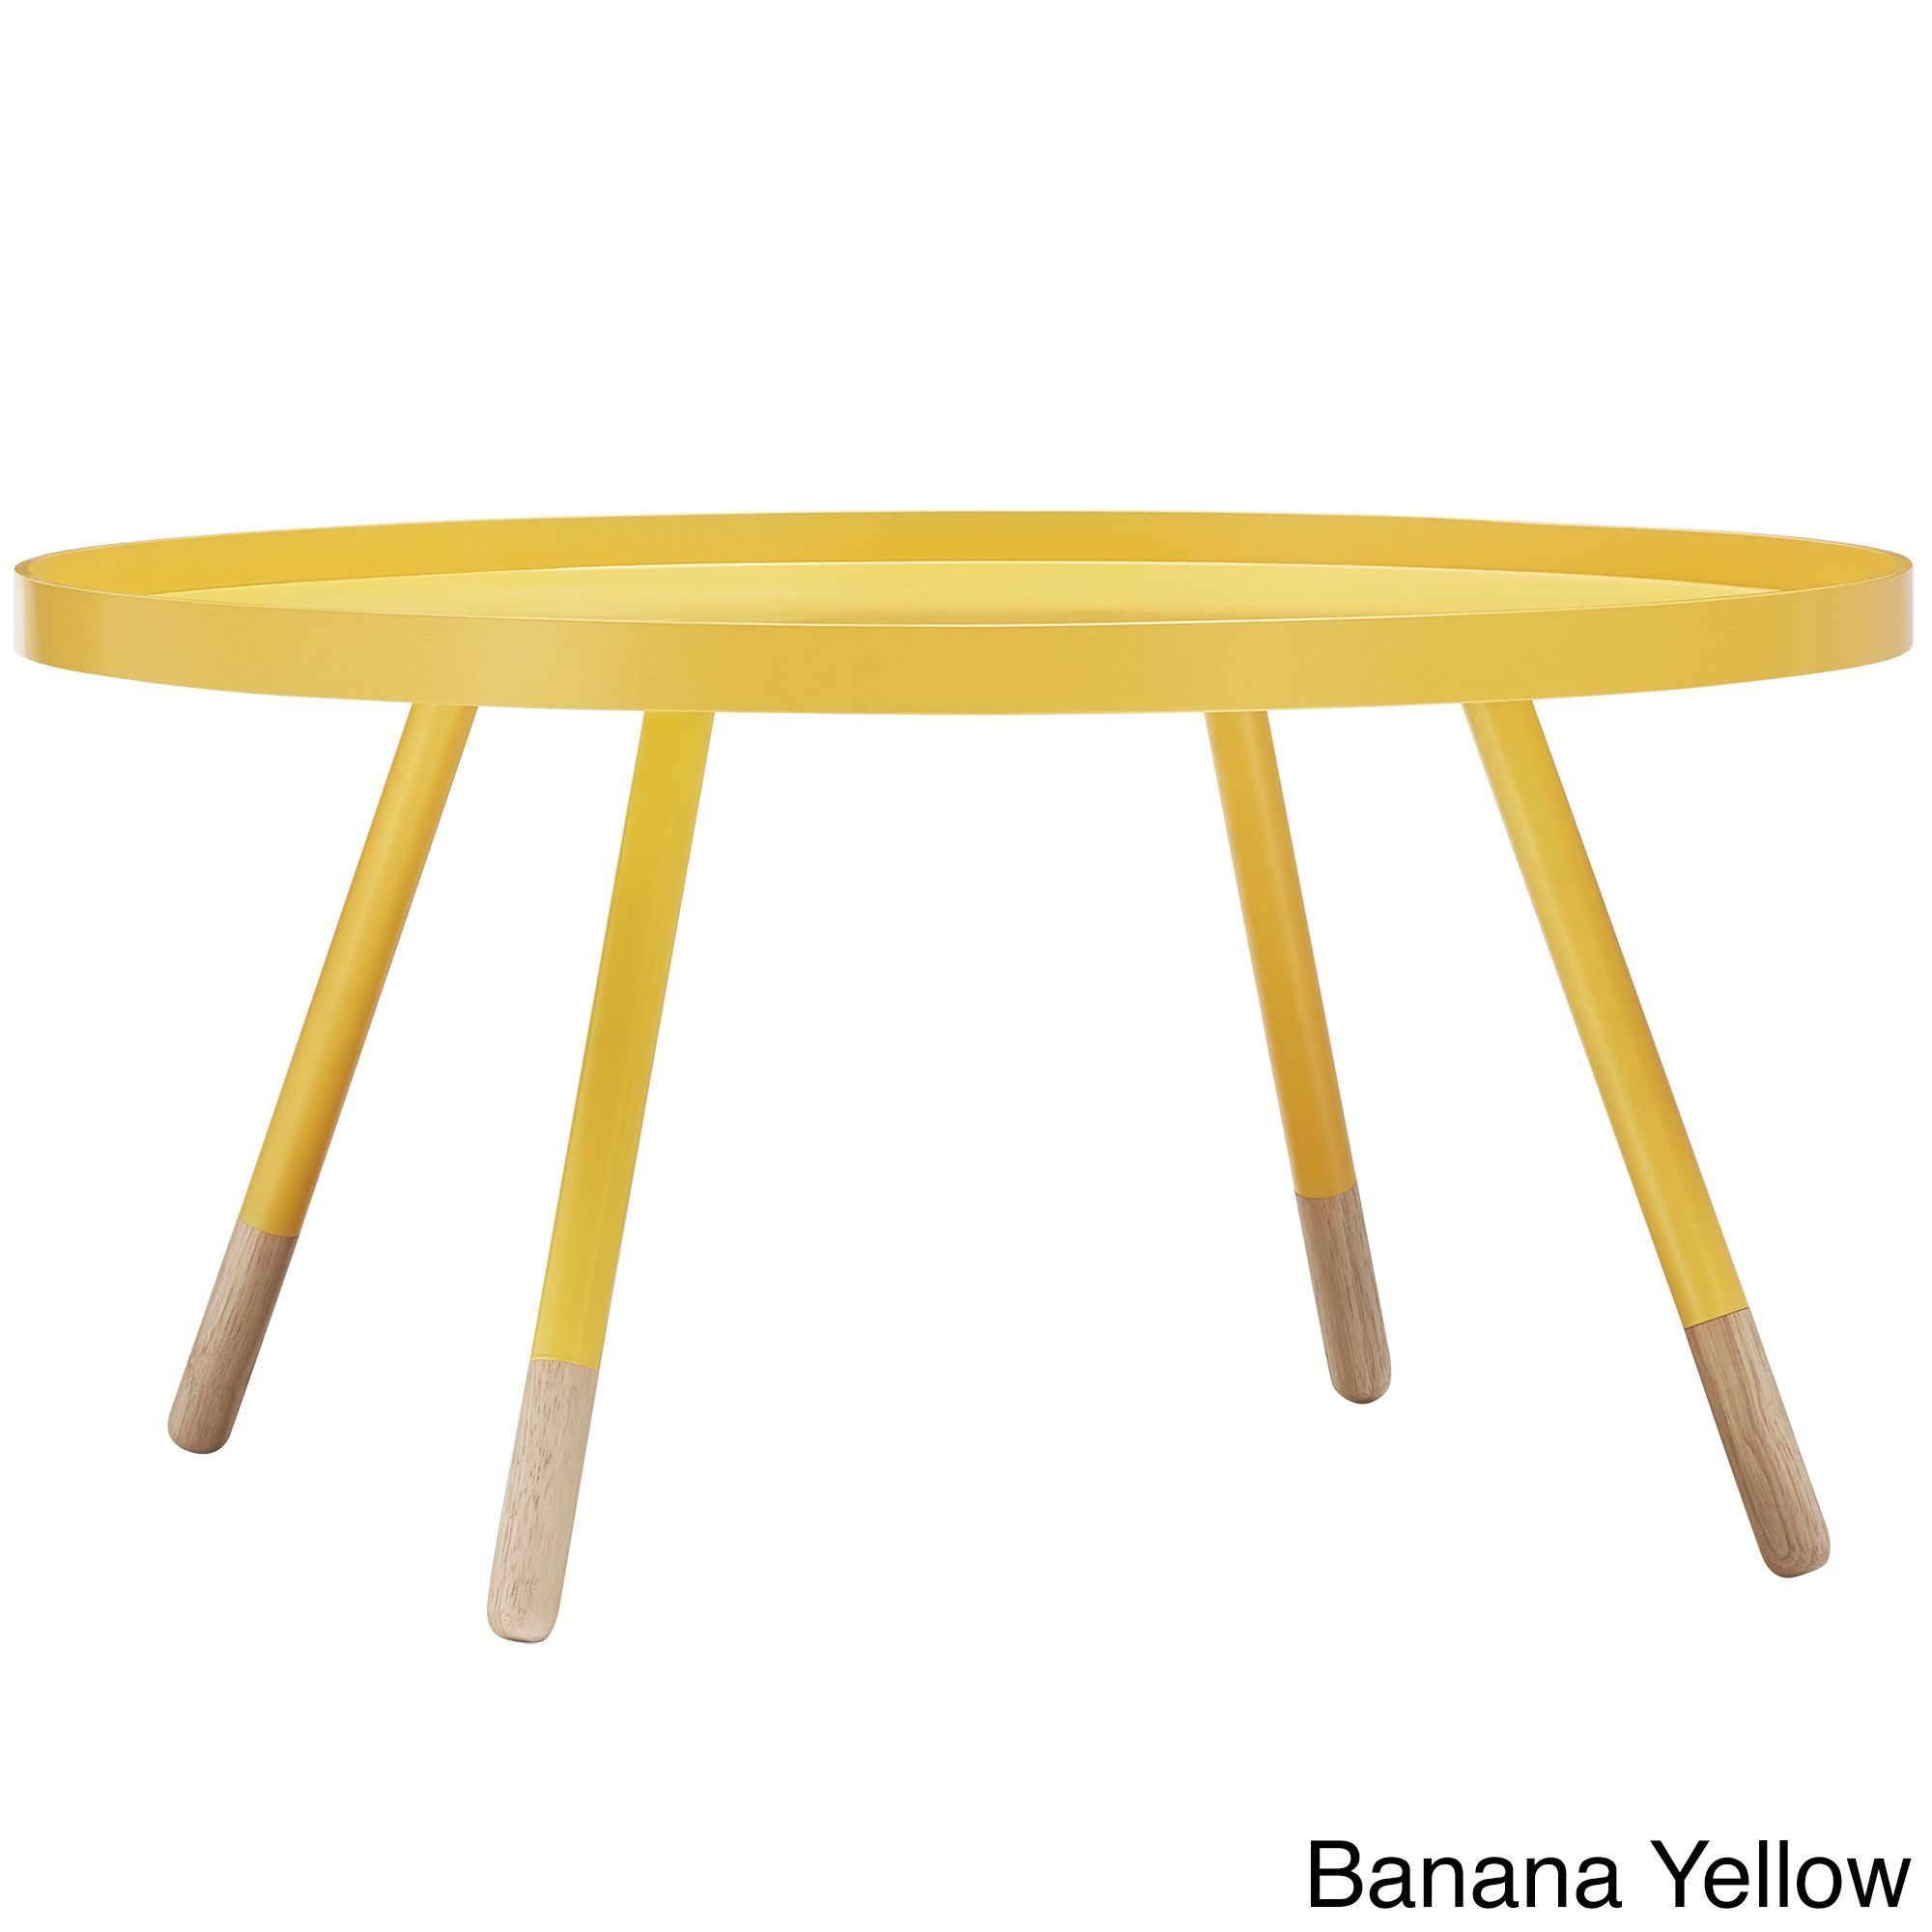 Marcella Paint Dipped Round Spindle Tray Top Coffee Table By Mid Century Living Bananayellow Yellow